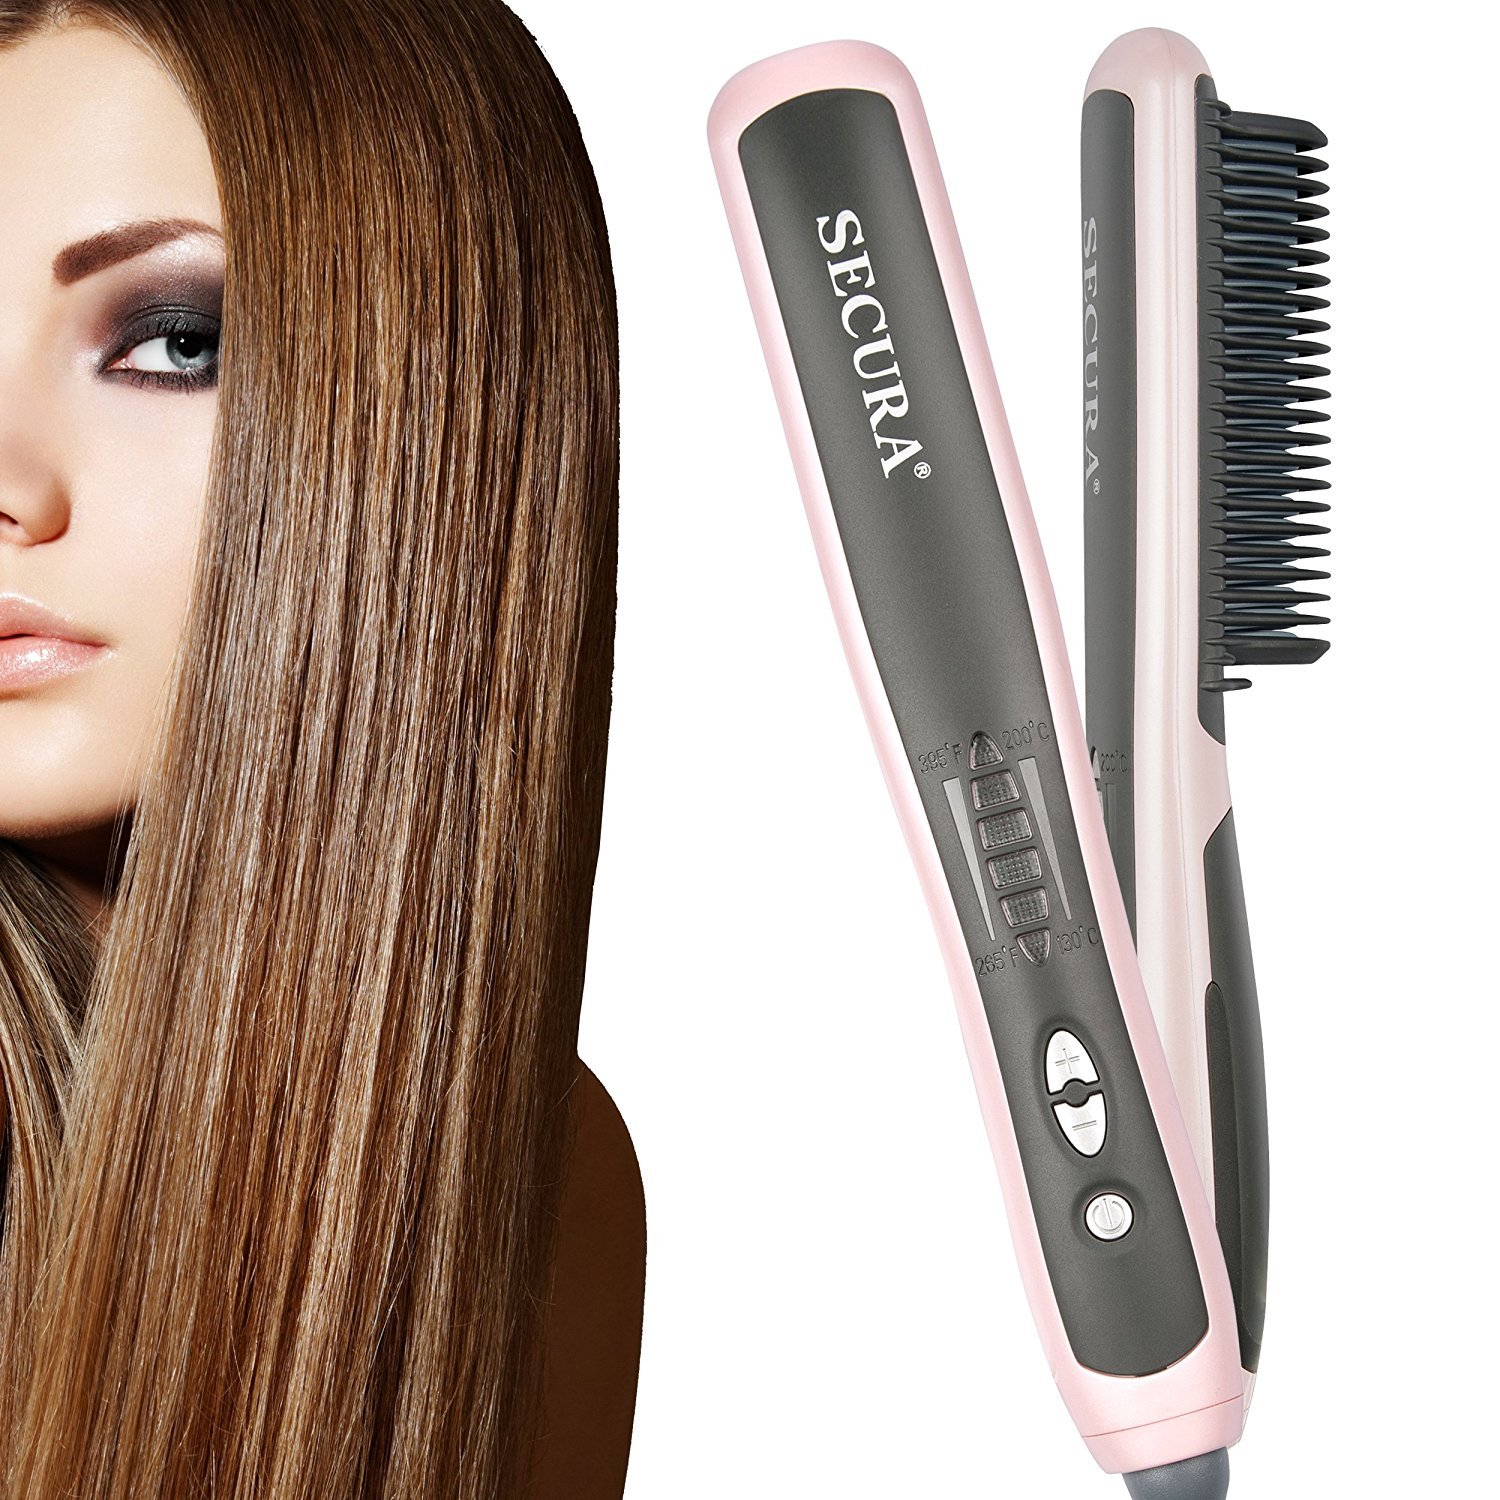 Secura Hair Straightener Comb with PTC Ceramic Heating Elements and 6 Levels of Temperature Control Hot Comb Hair Straightener